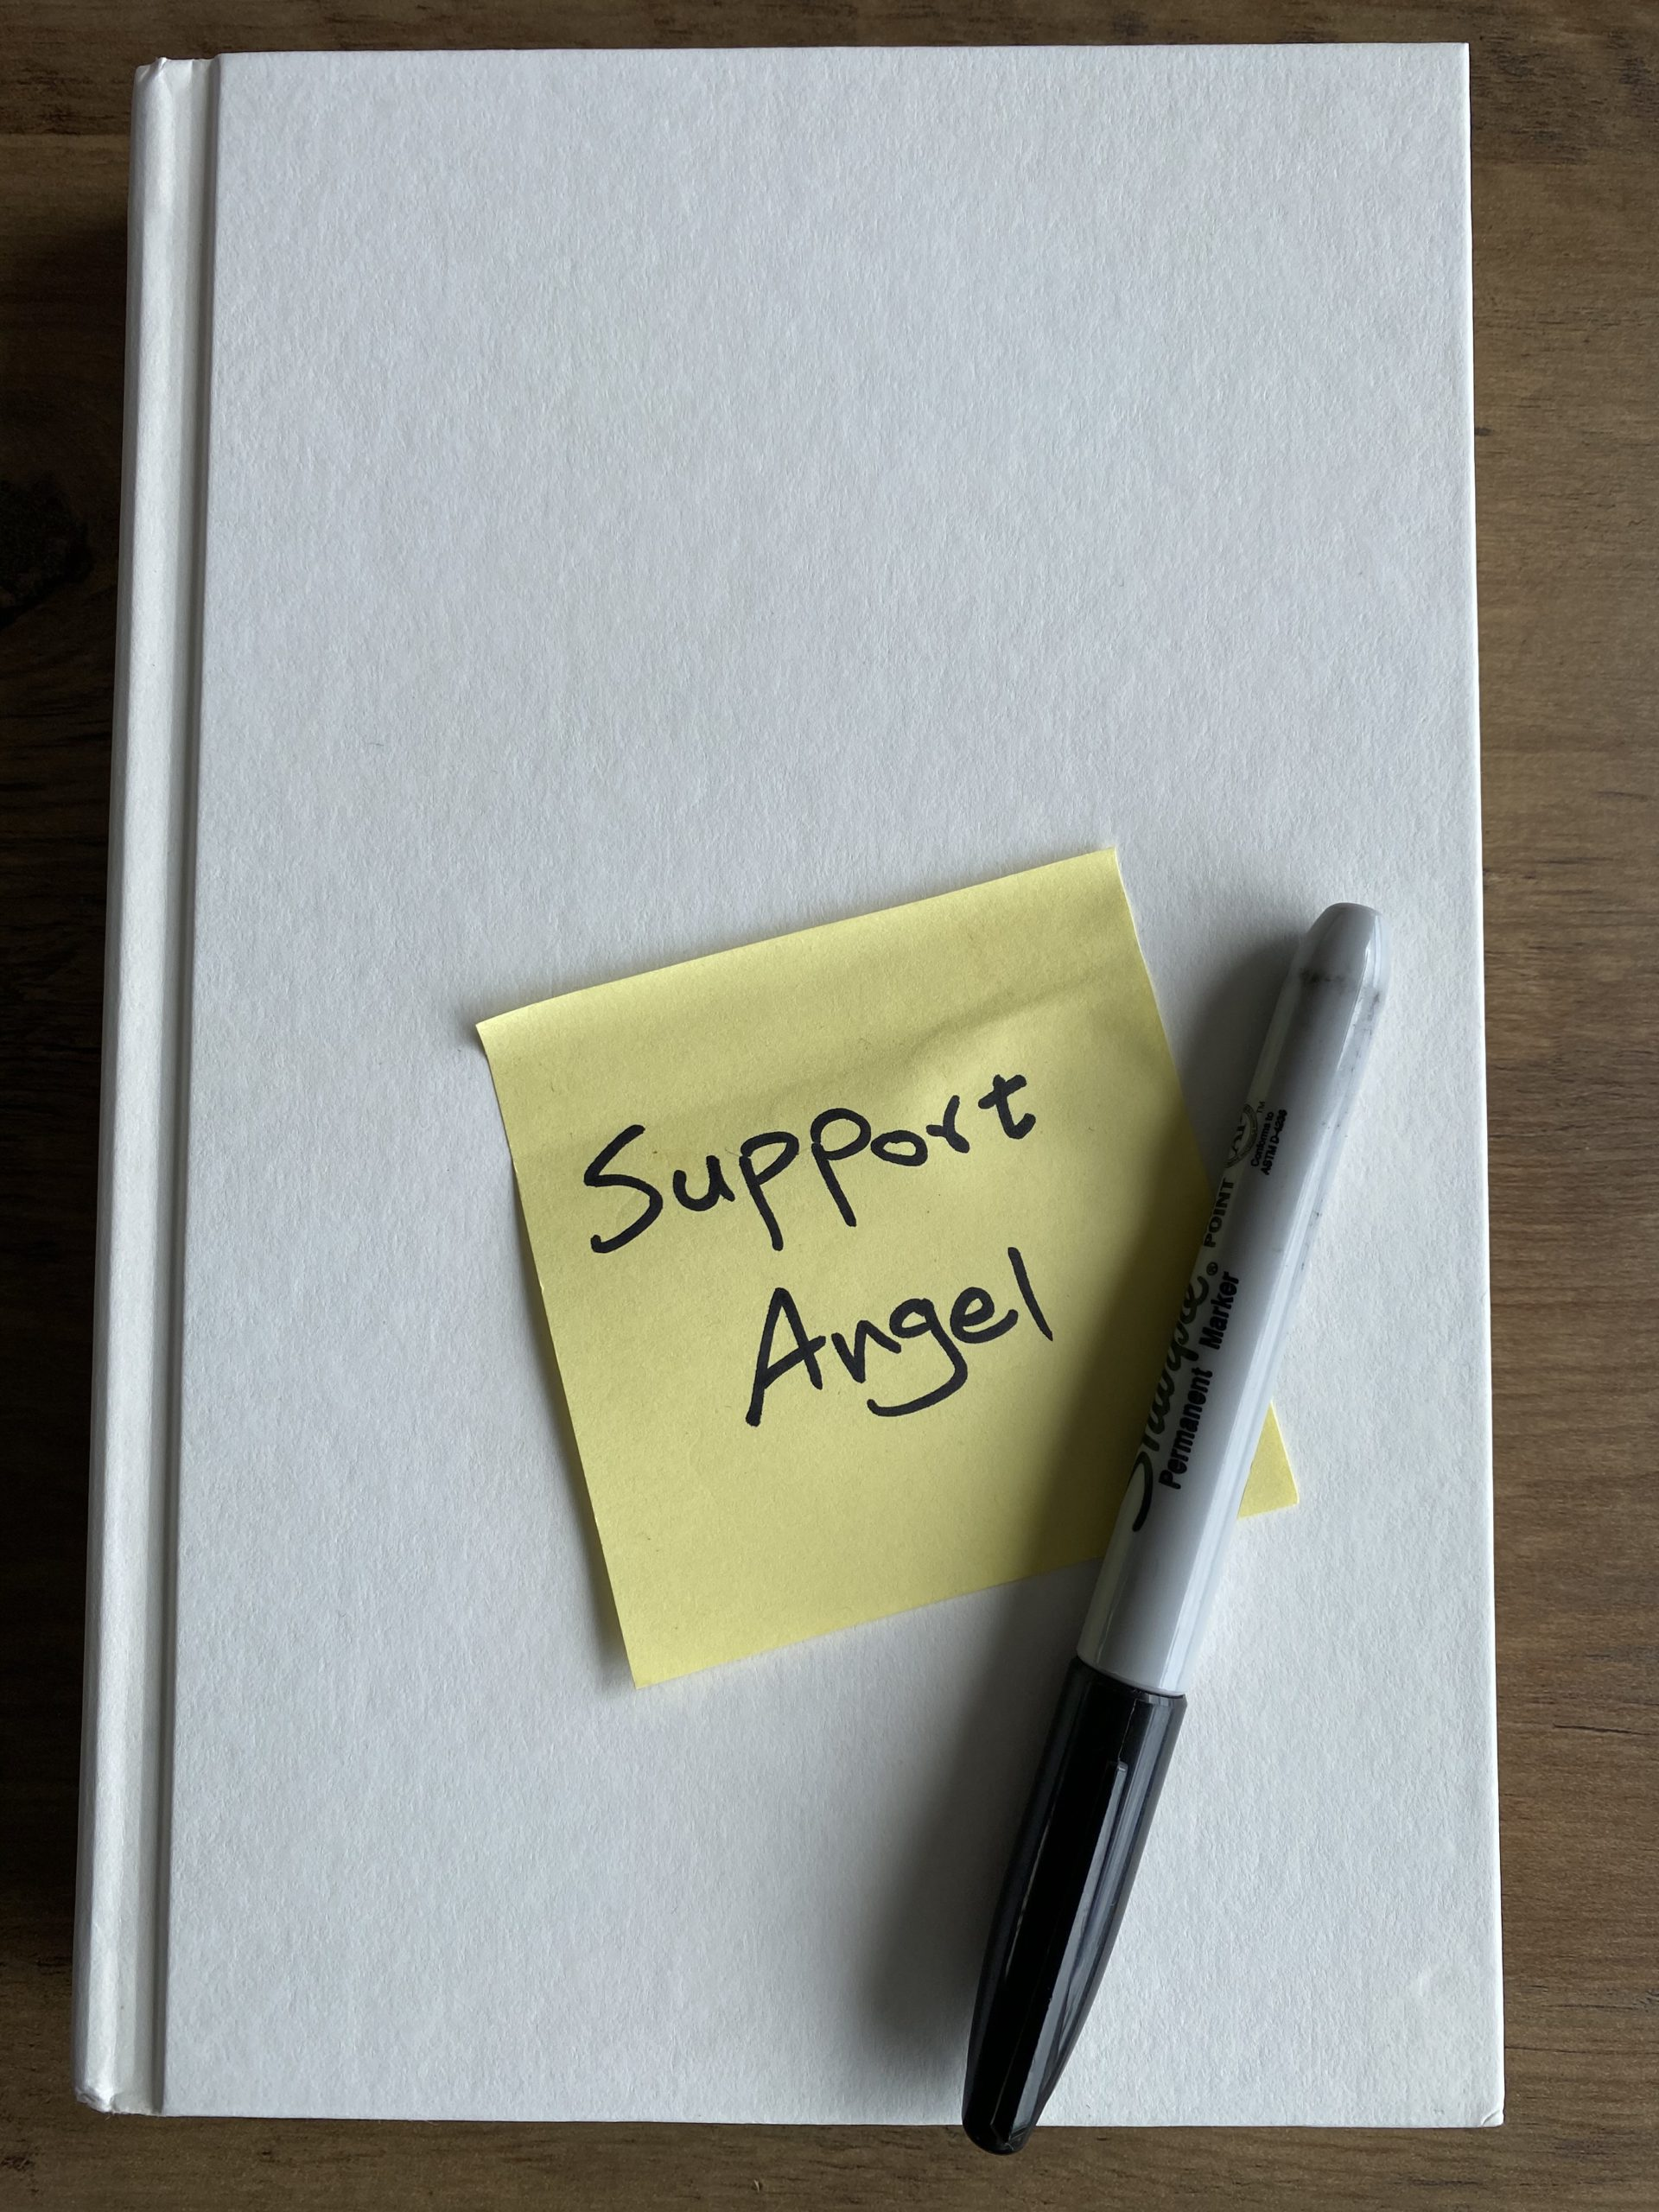 Support Angel